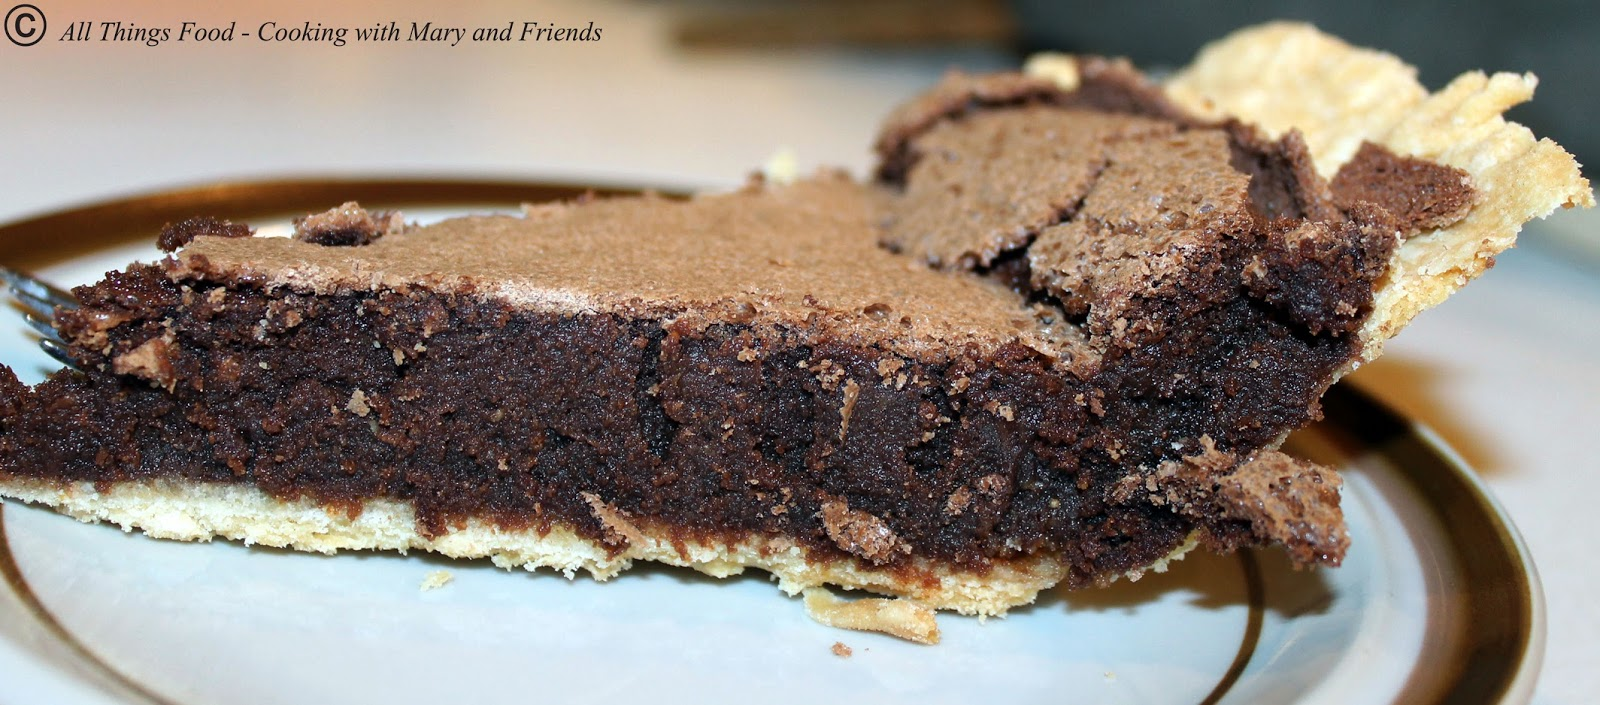 Chocolate Chess Pie Without Eggs